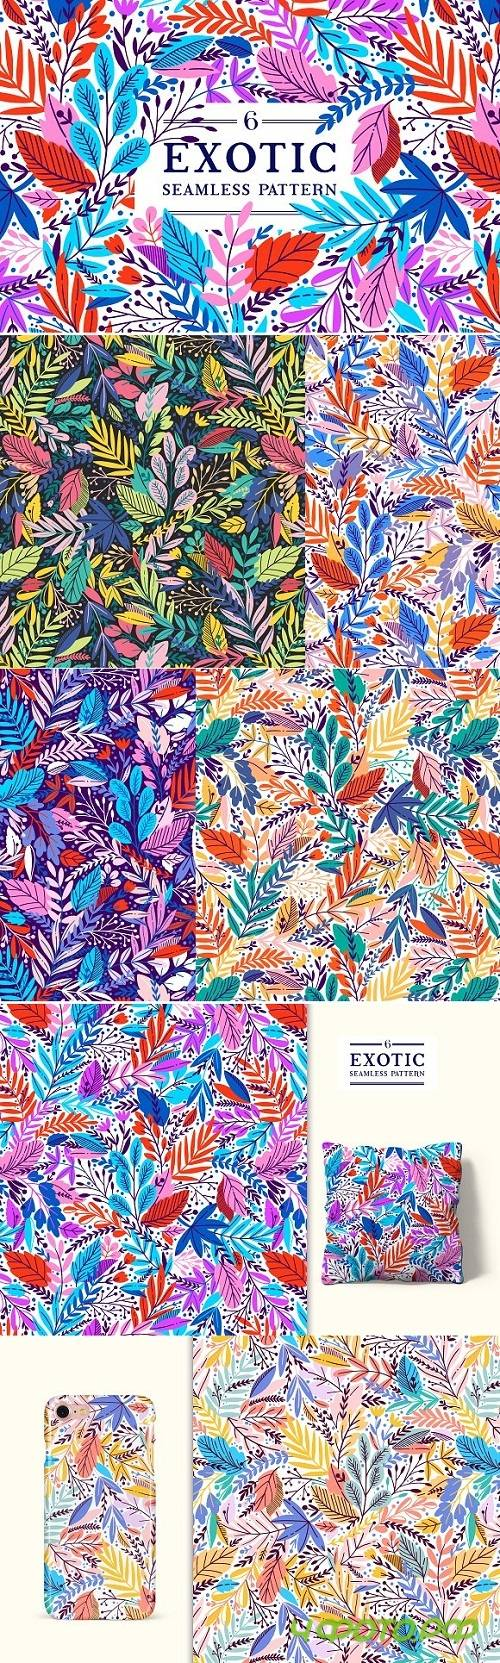 6 Exotic patterns - 2802629